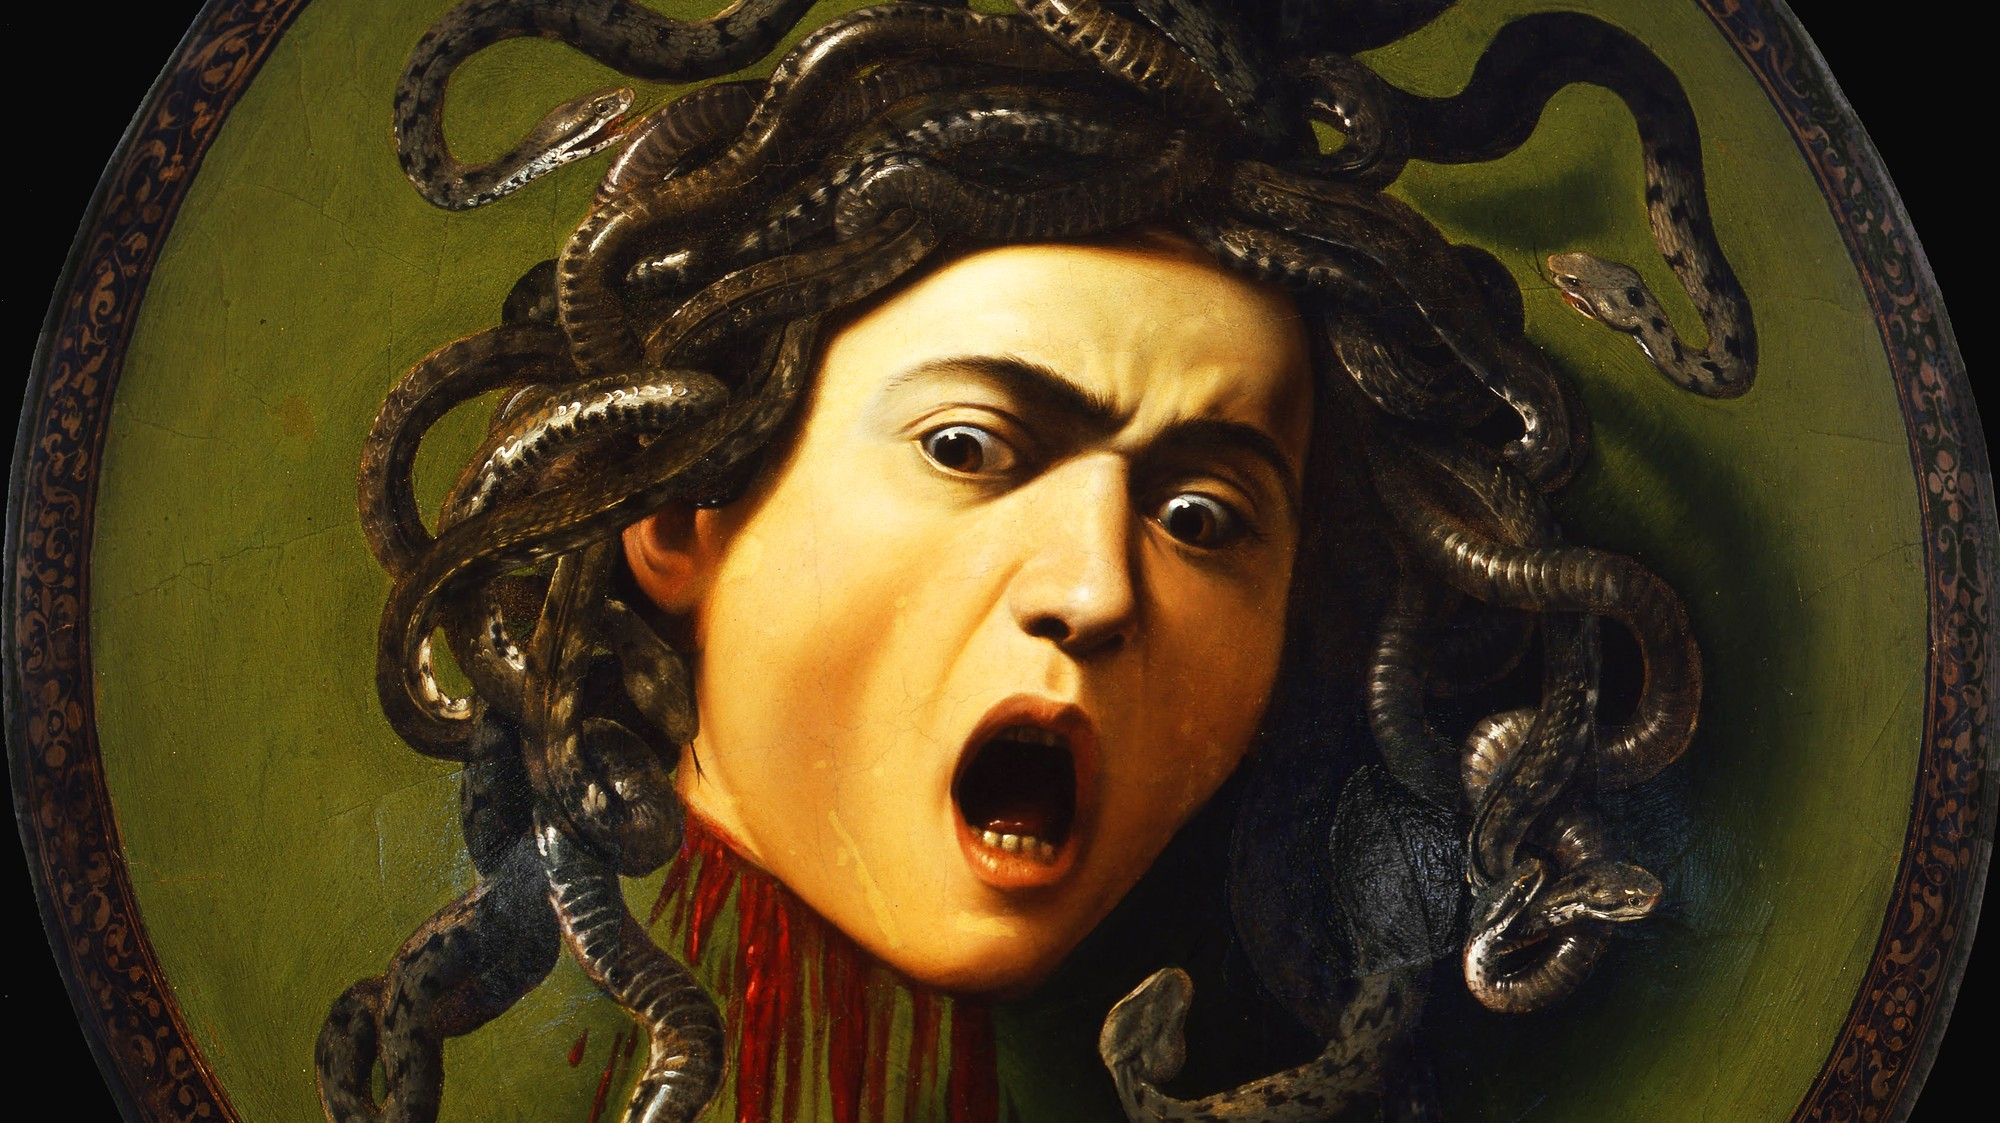 The Timeless Myth of Medusa, a Rape Victim Turned Into a